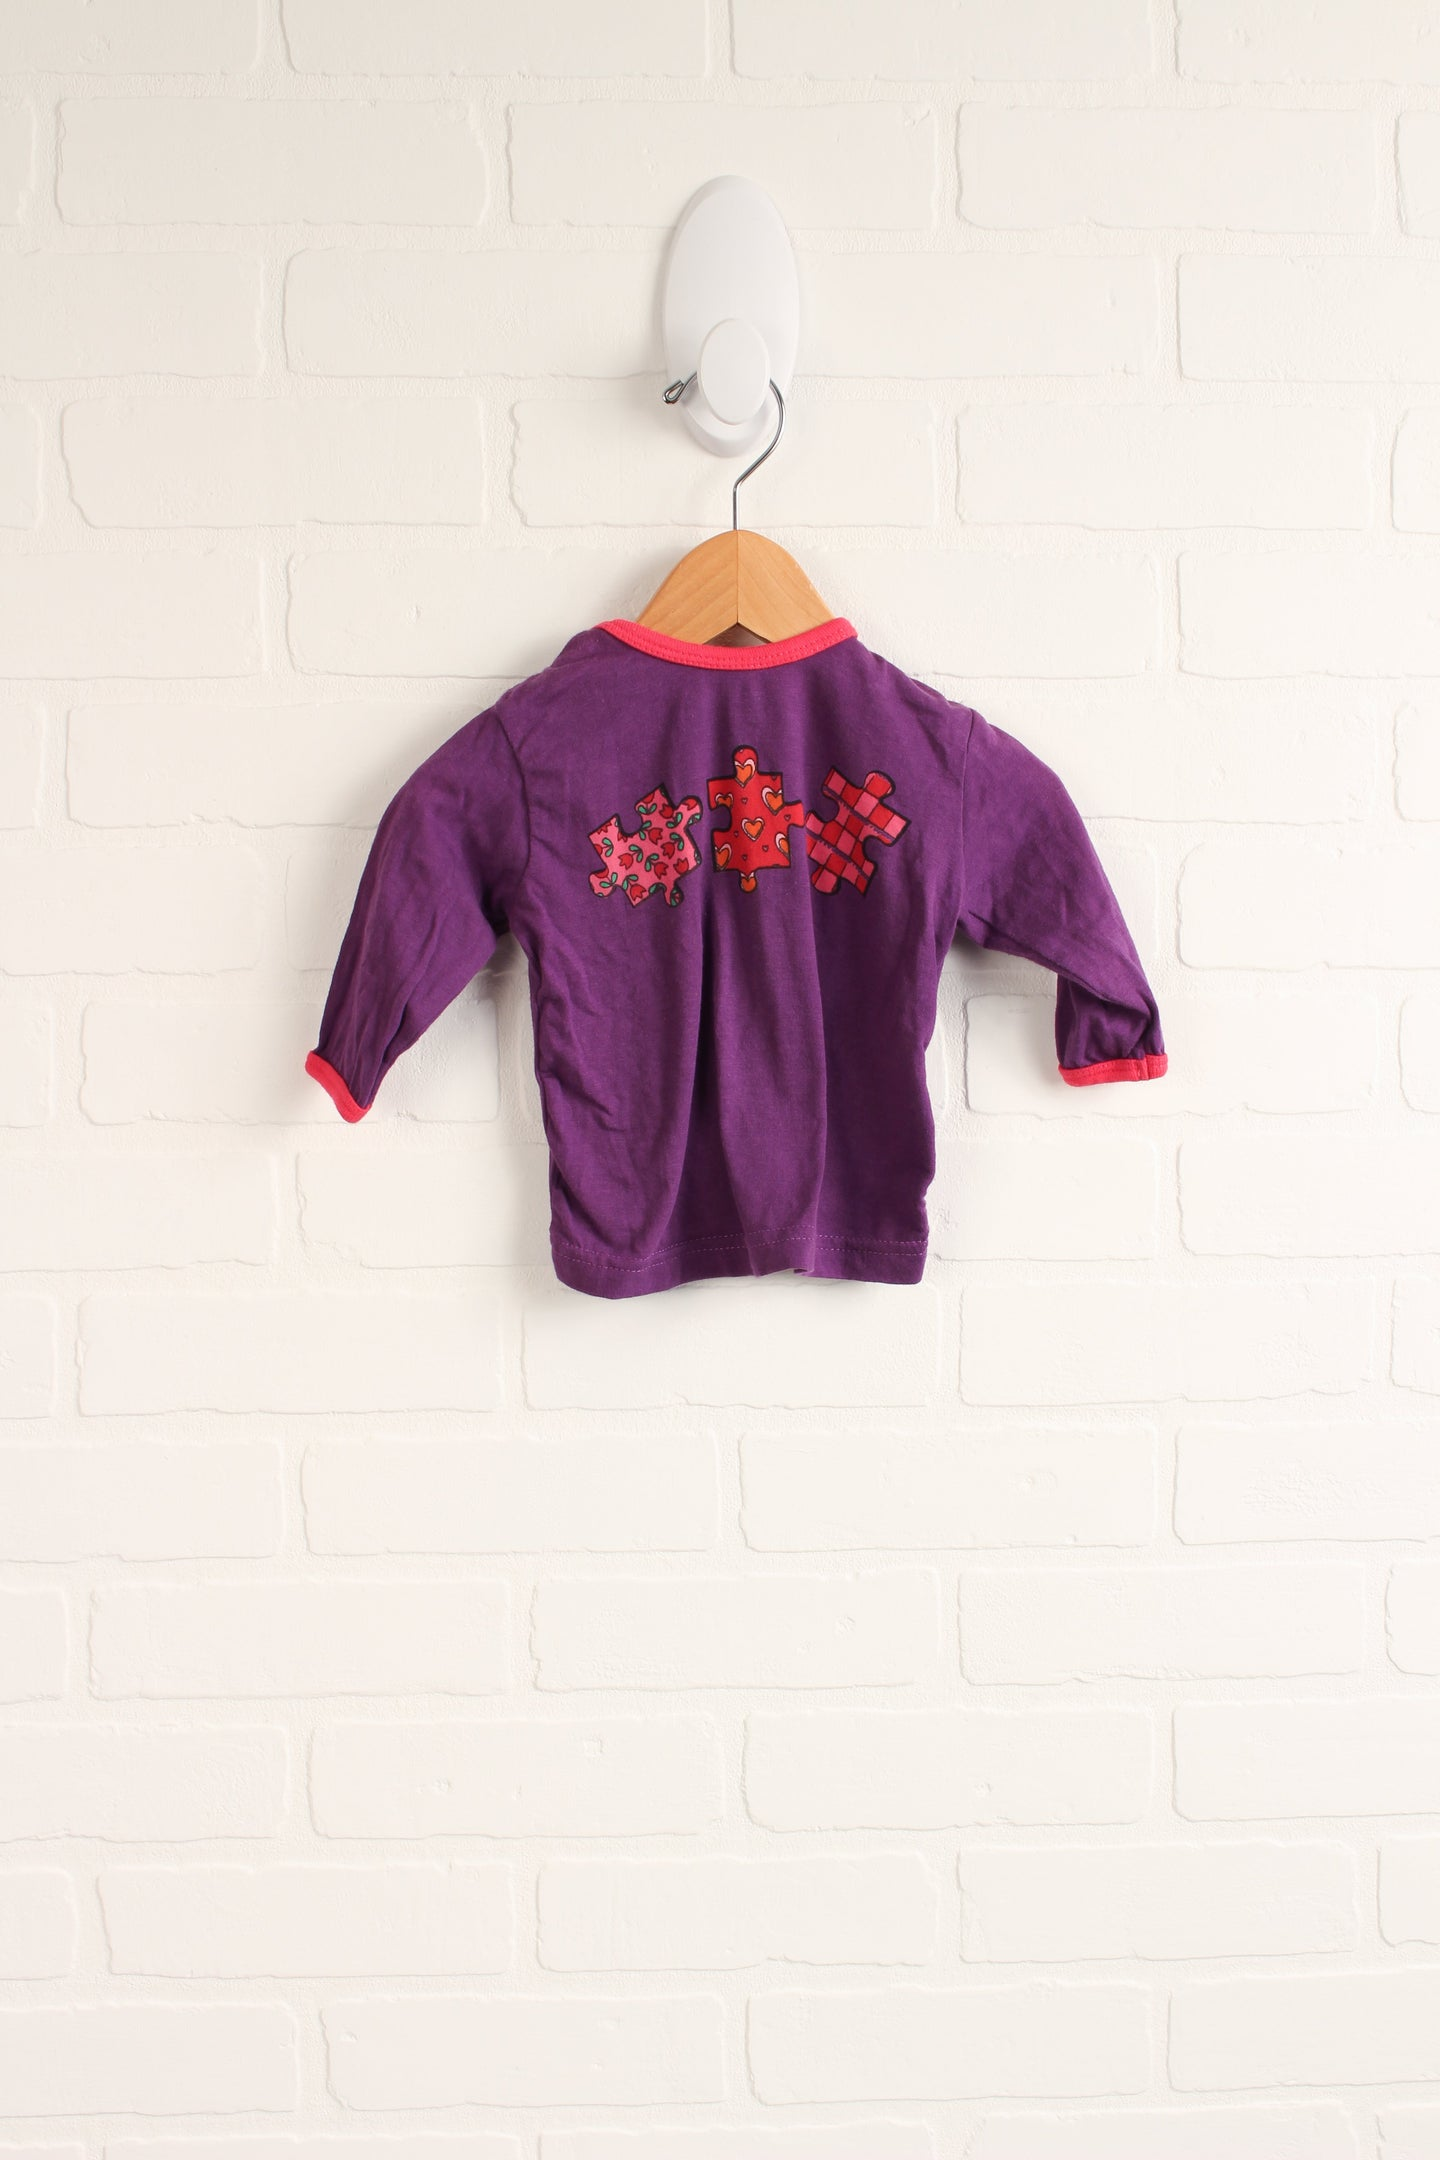 Purple + Hot Pink Graphic Top (Size 3-6M)